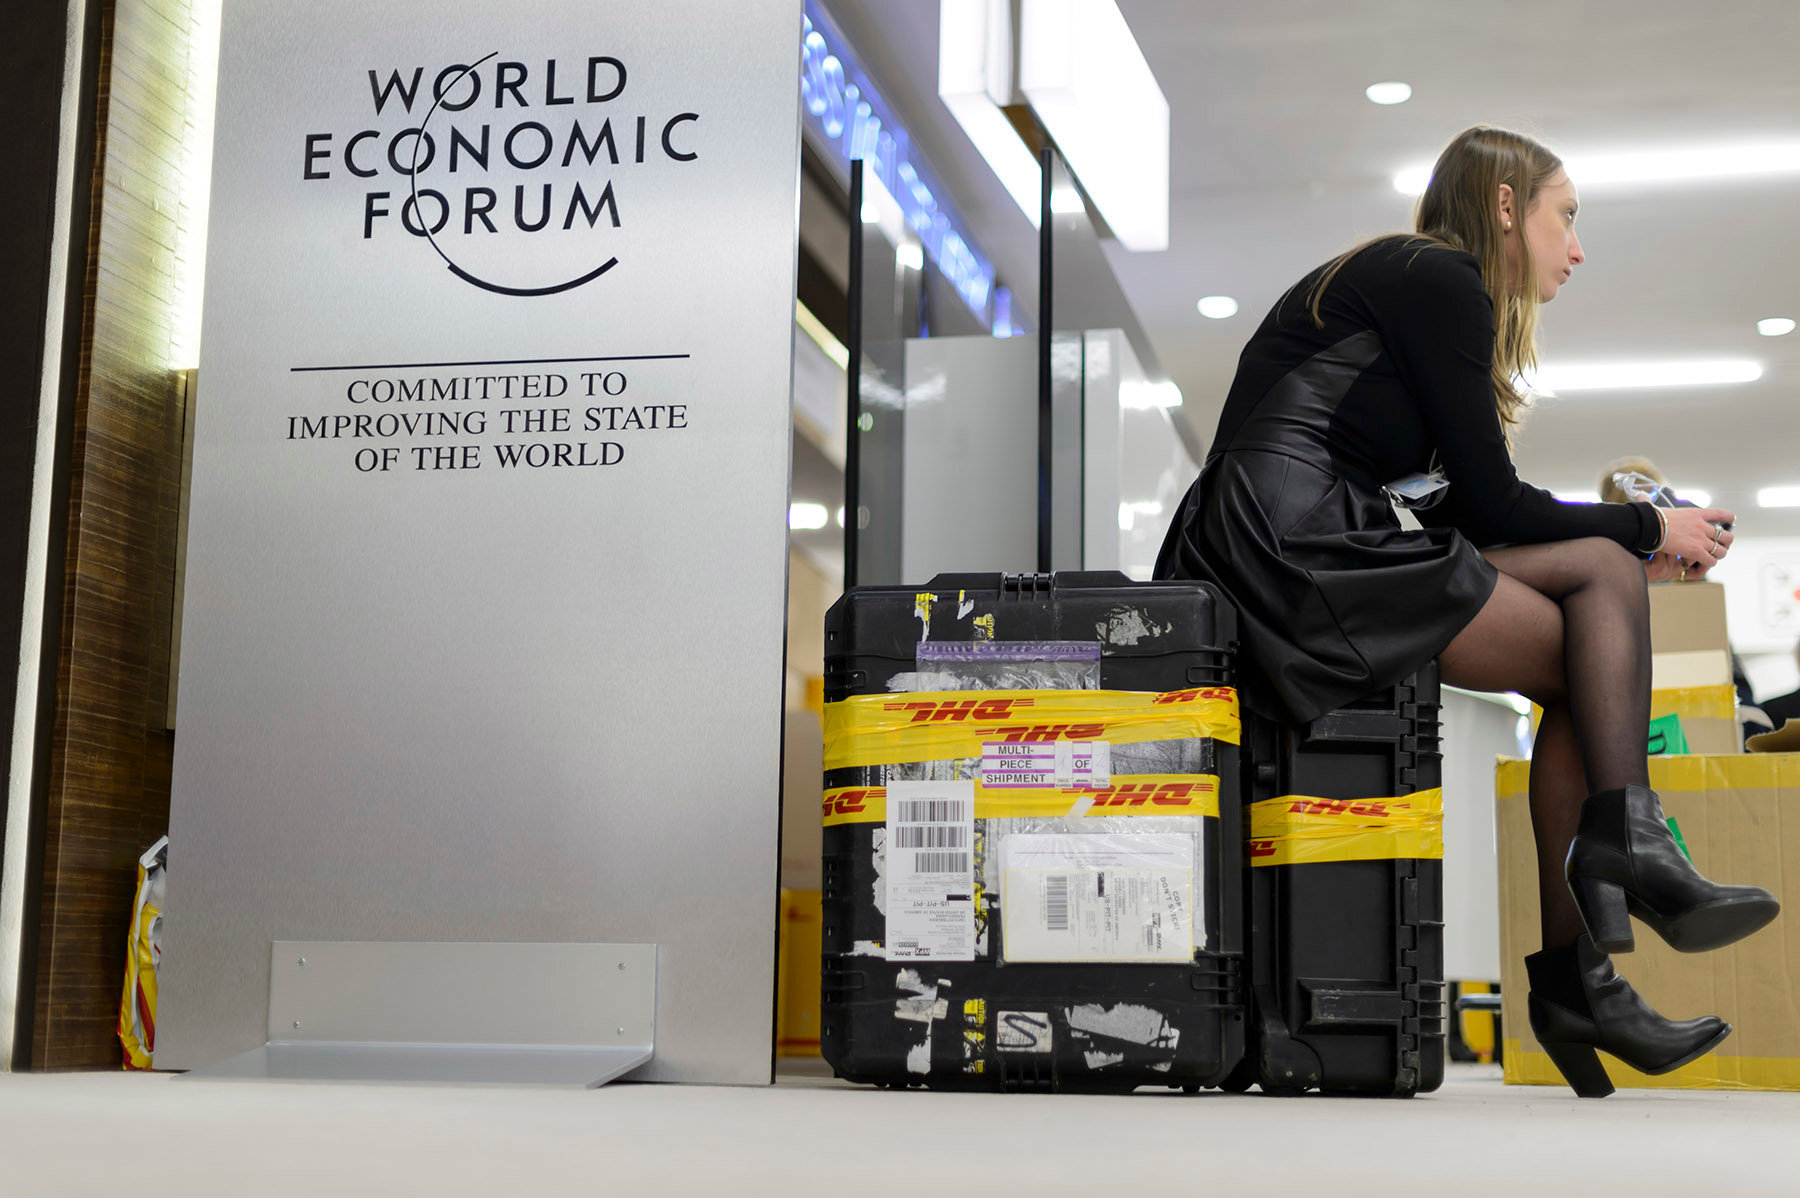 World Economic Forum - 2015